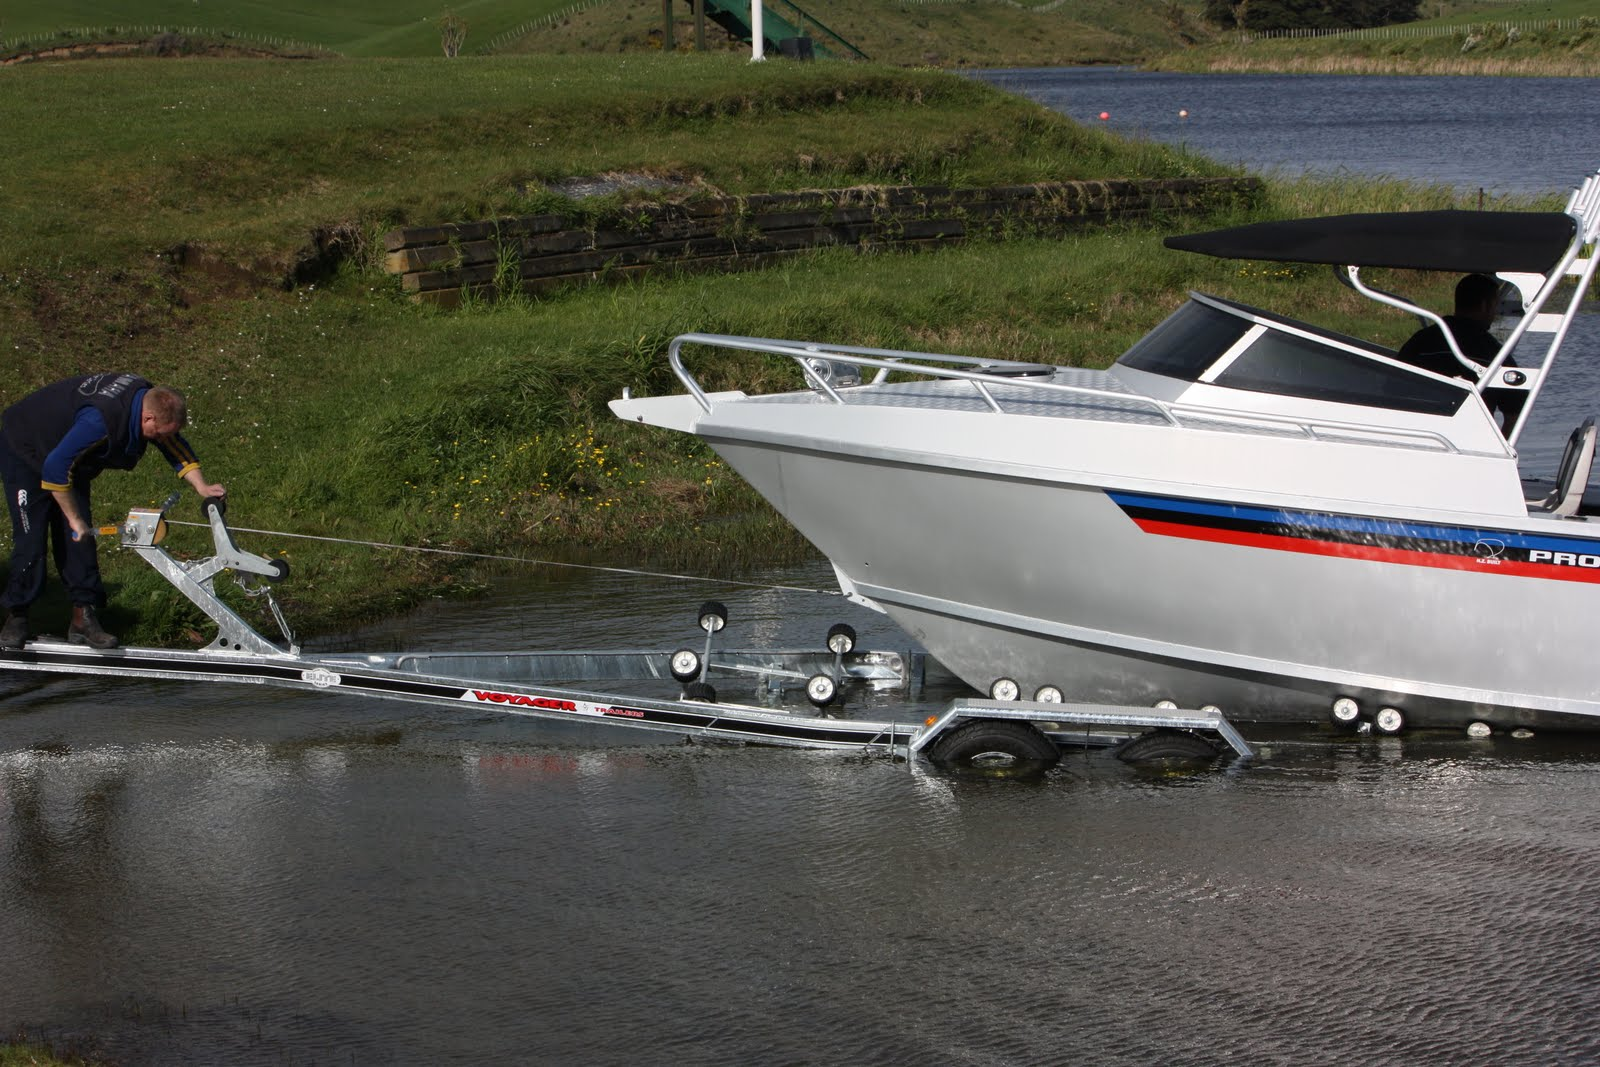 AMF Boats - Alloy Boat Builders: AMF Expand Tender Range